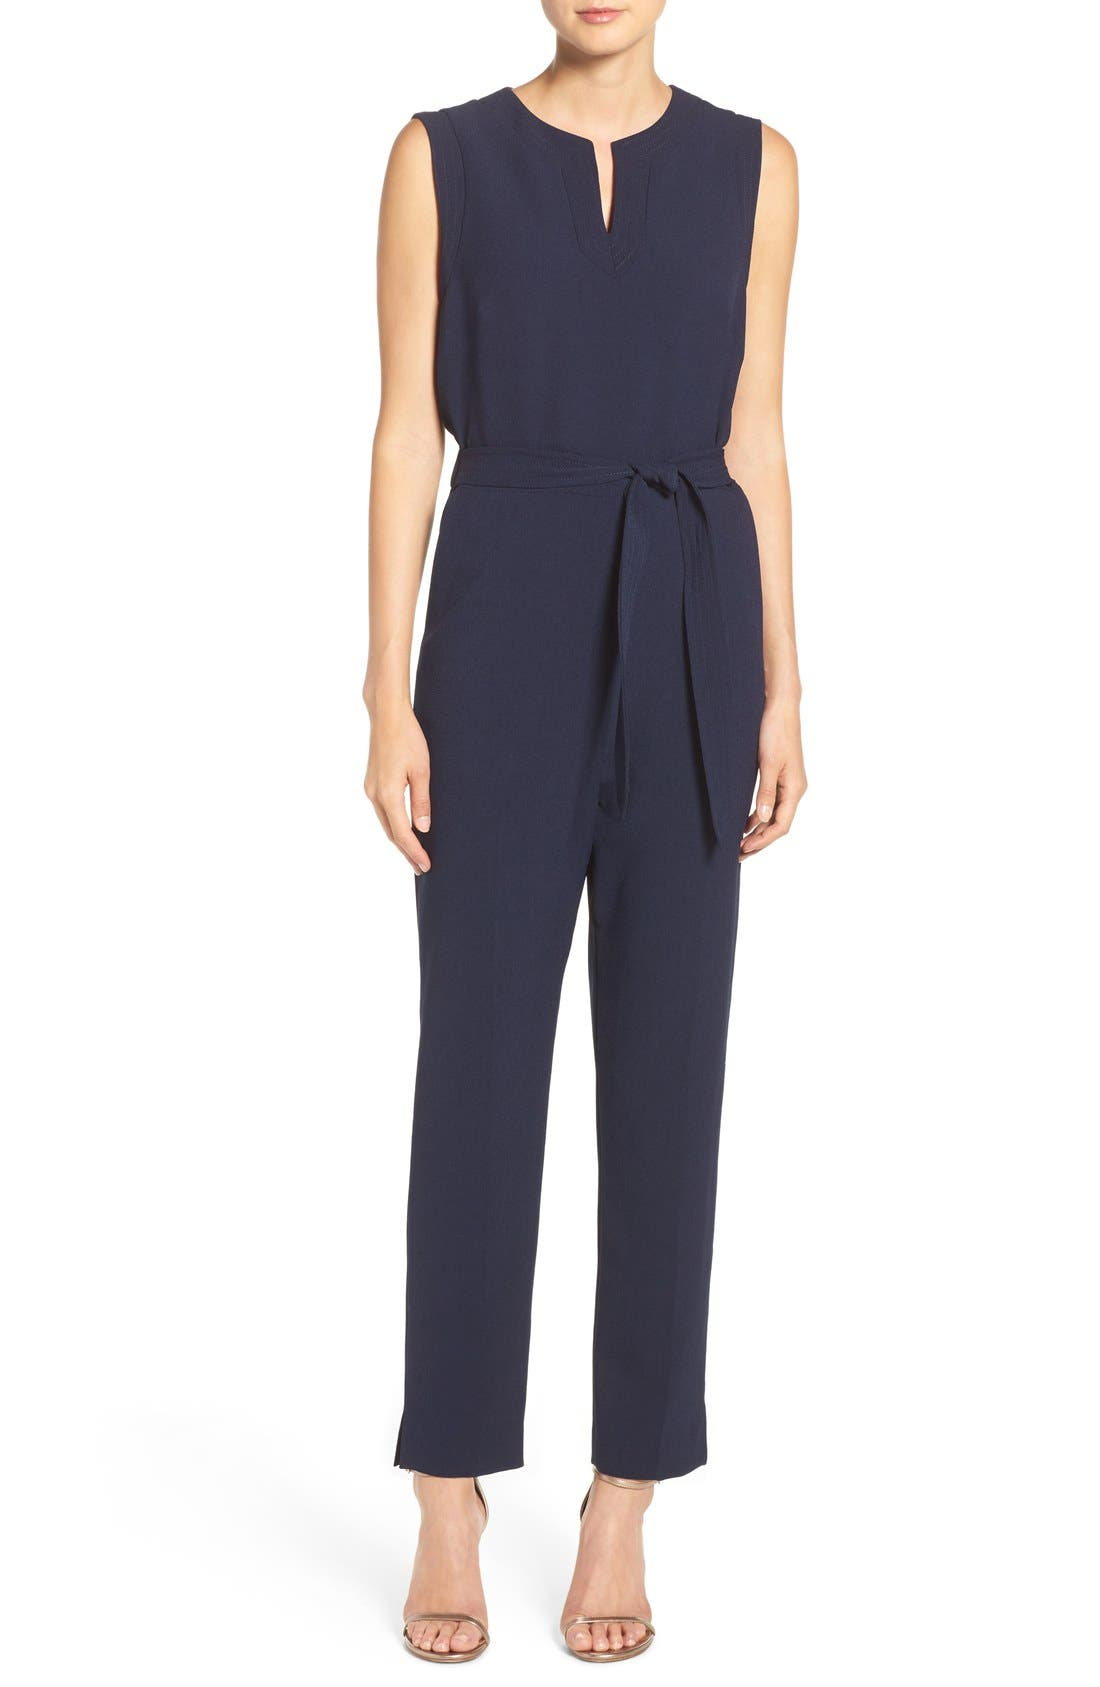 Alternate Image 1 Selected - Vince Camuto Jumpsuit (Regular & Petite)